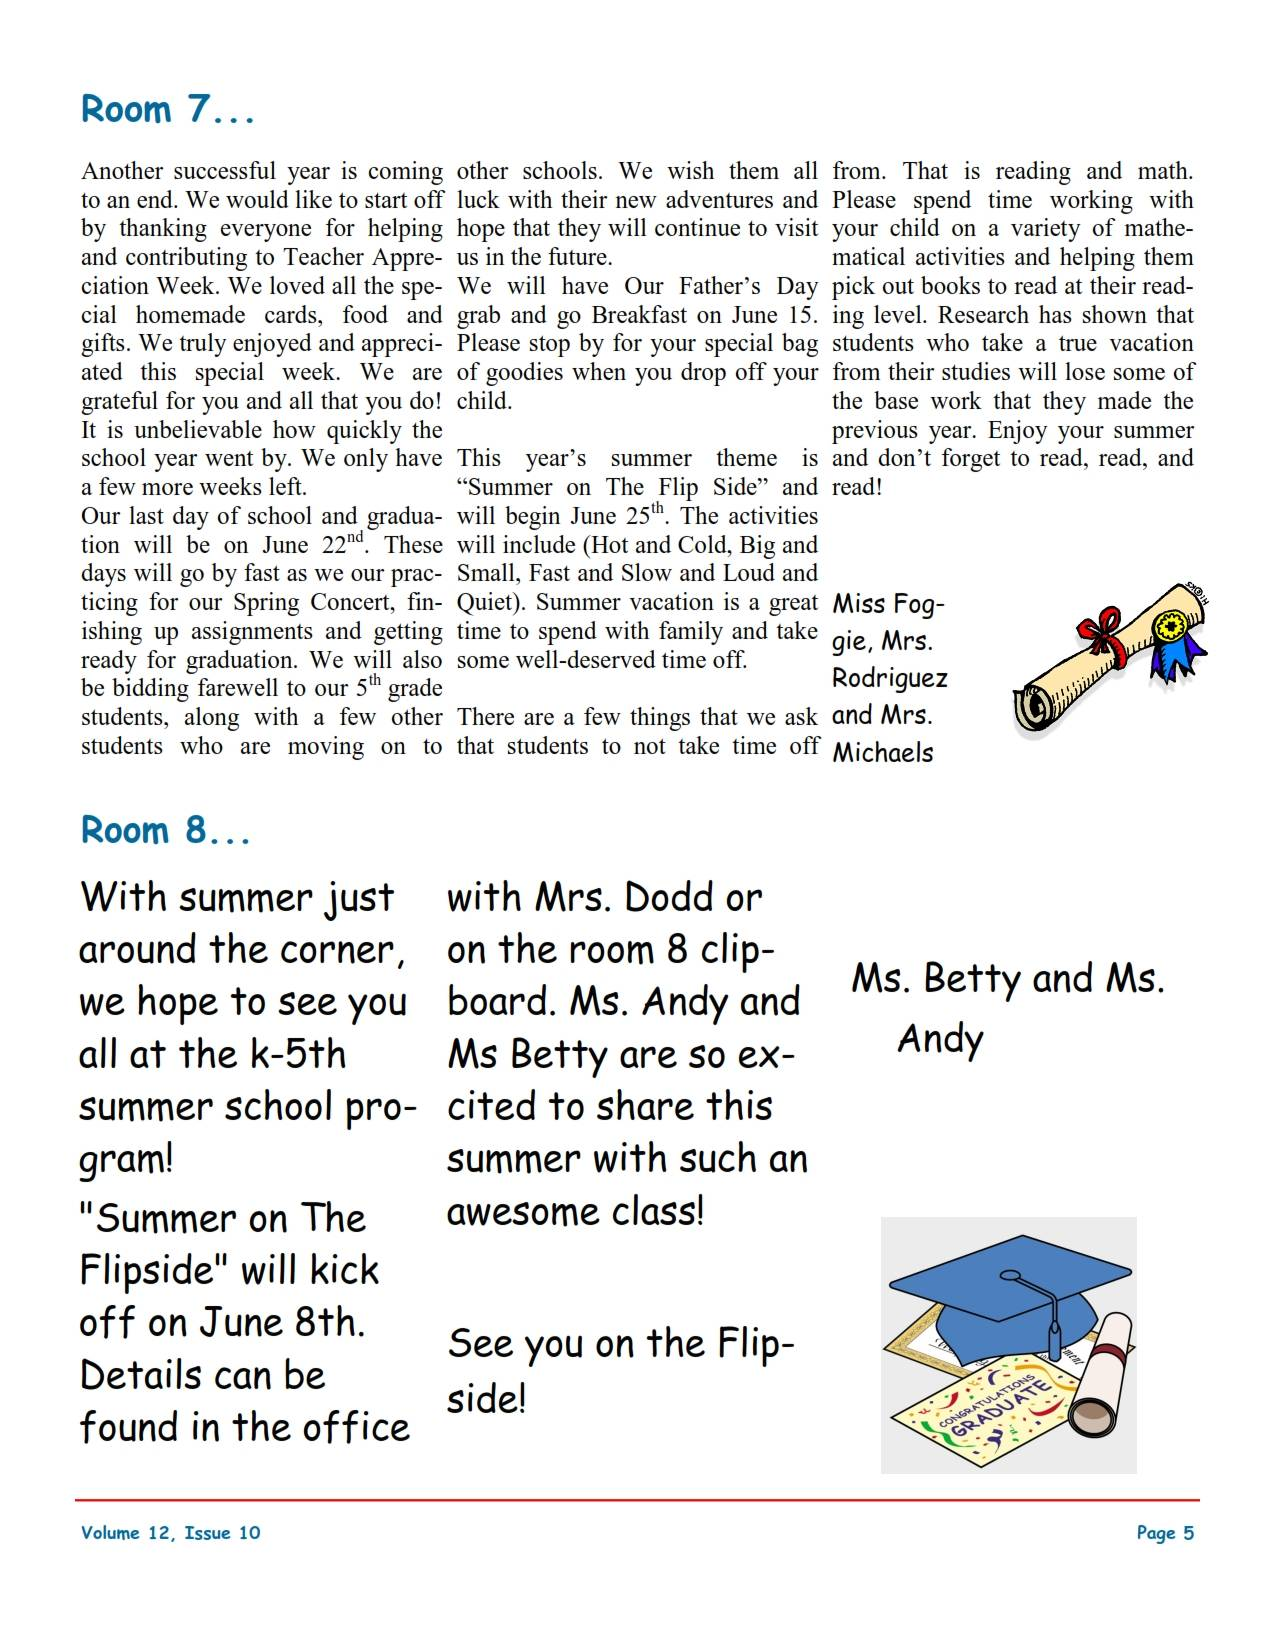 MSO June 2018 Newsletter. Room 7 and Room 8